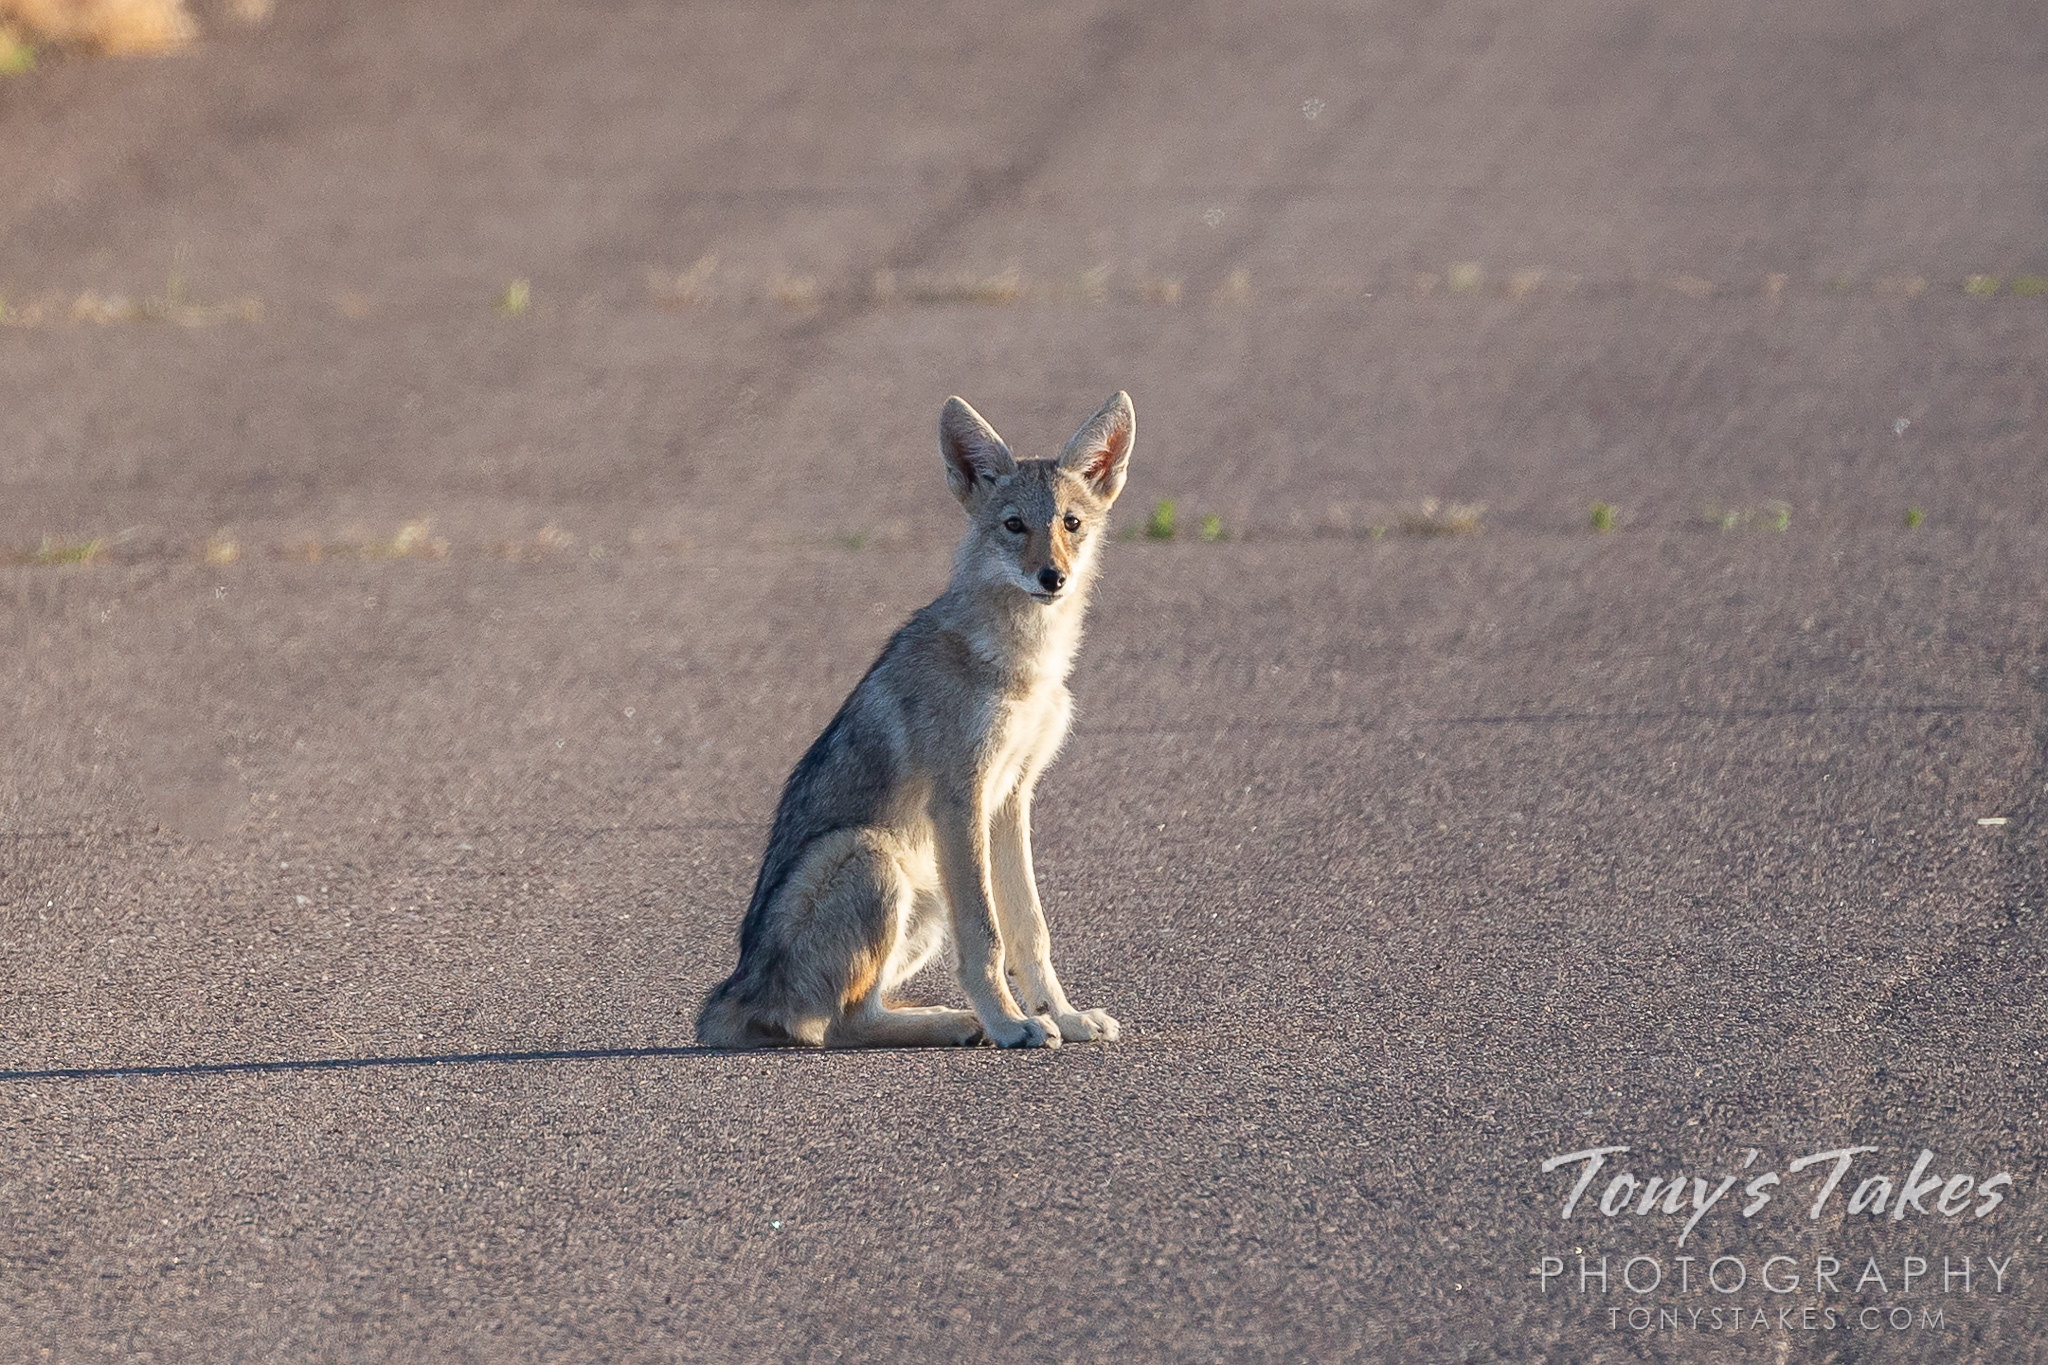 A young coyote hangs out in the road. (Tony's Takes)